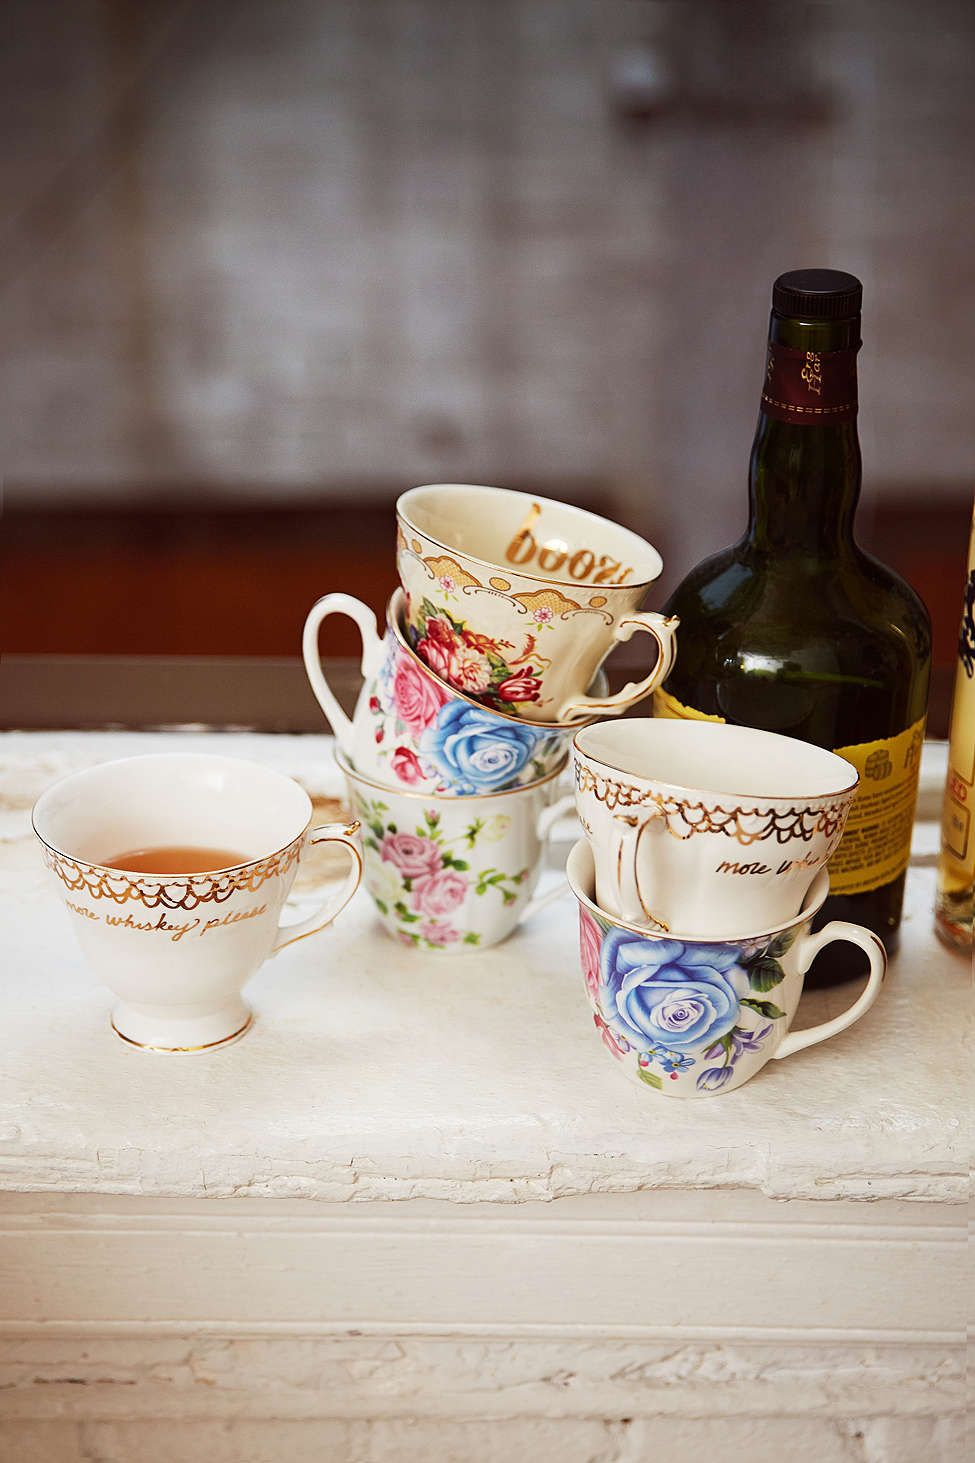 Cheeky Teacup Urban Outfitters Let39s Drink Tea cups